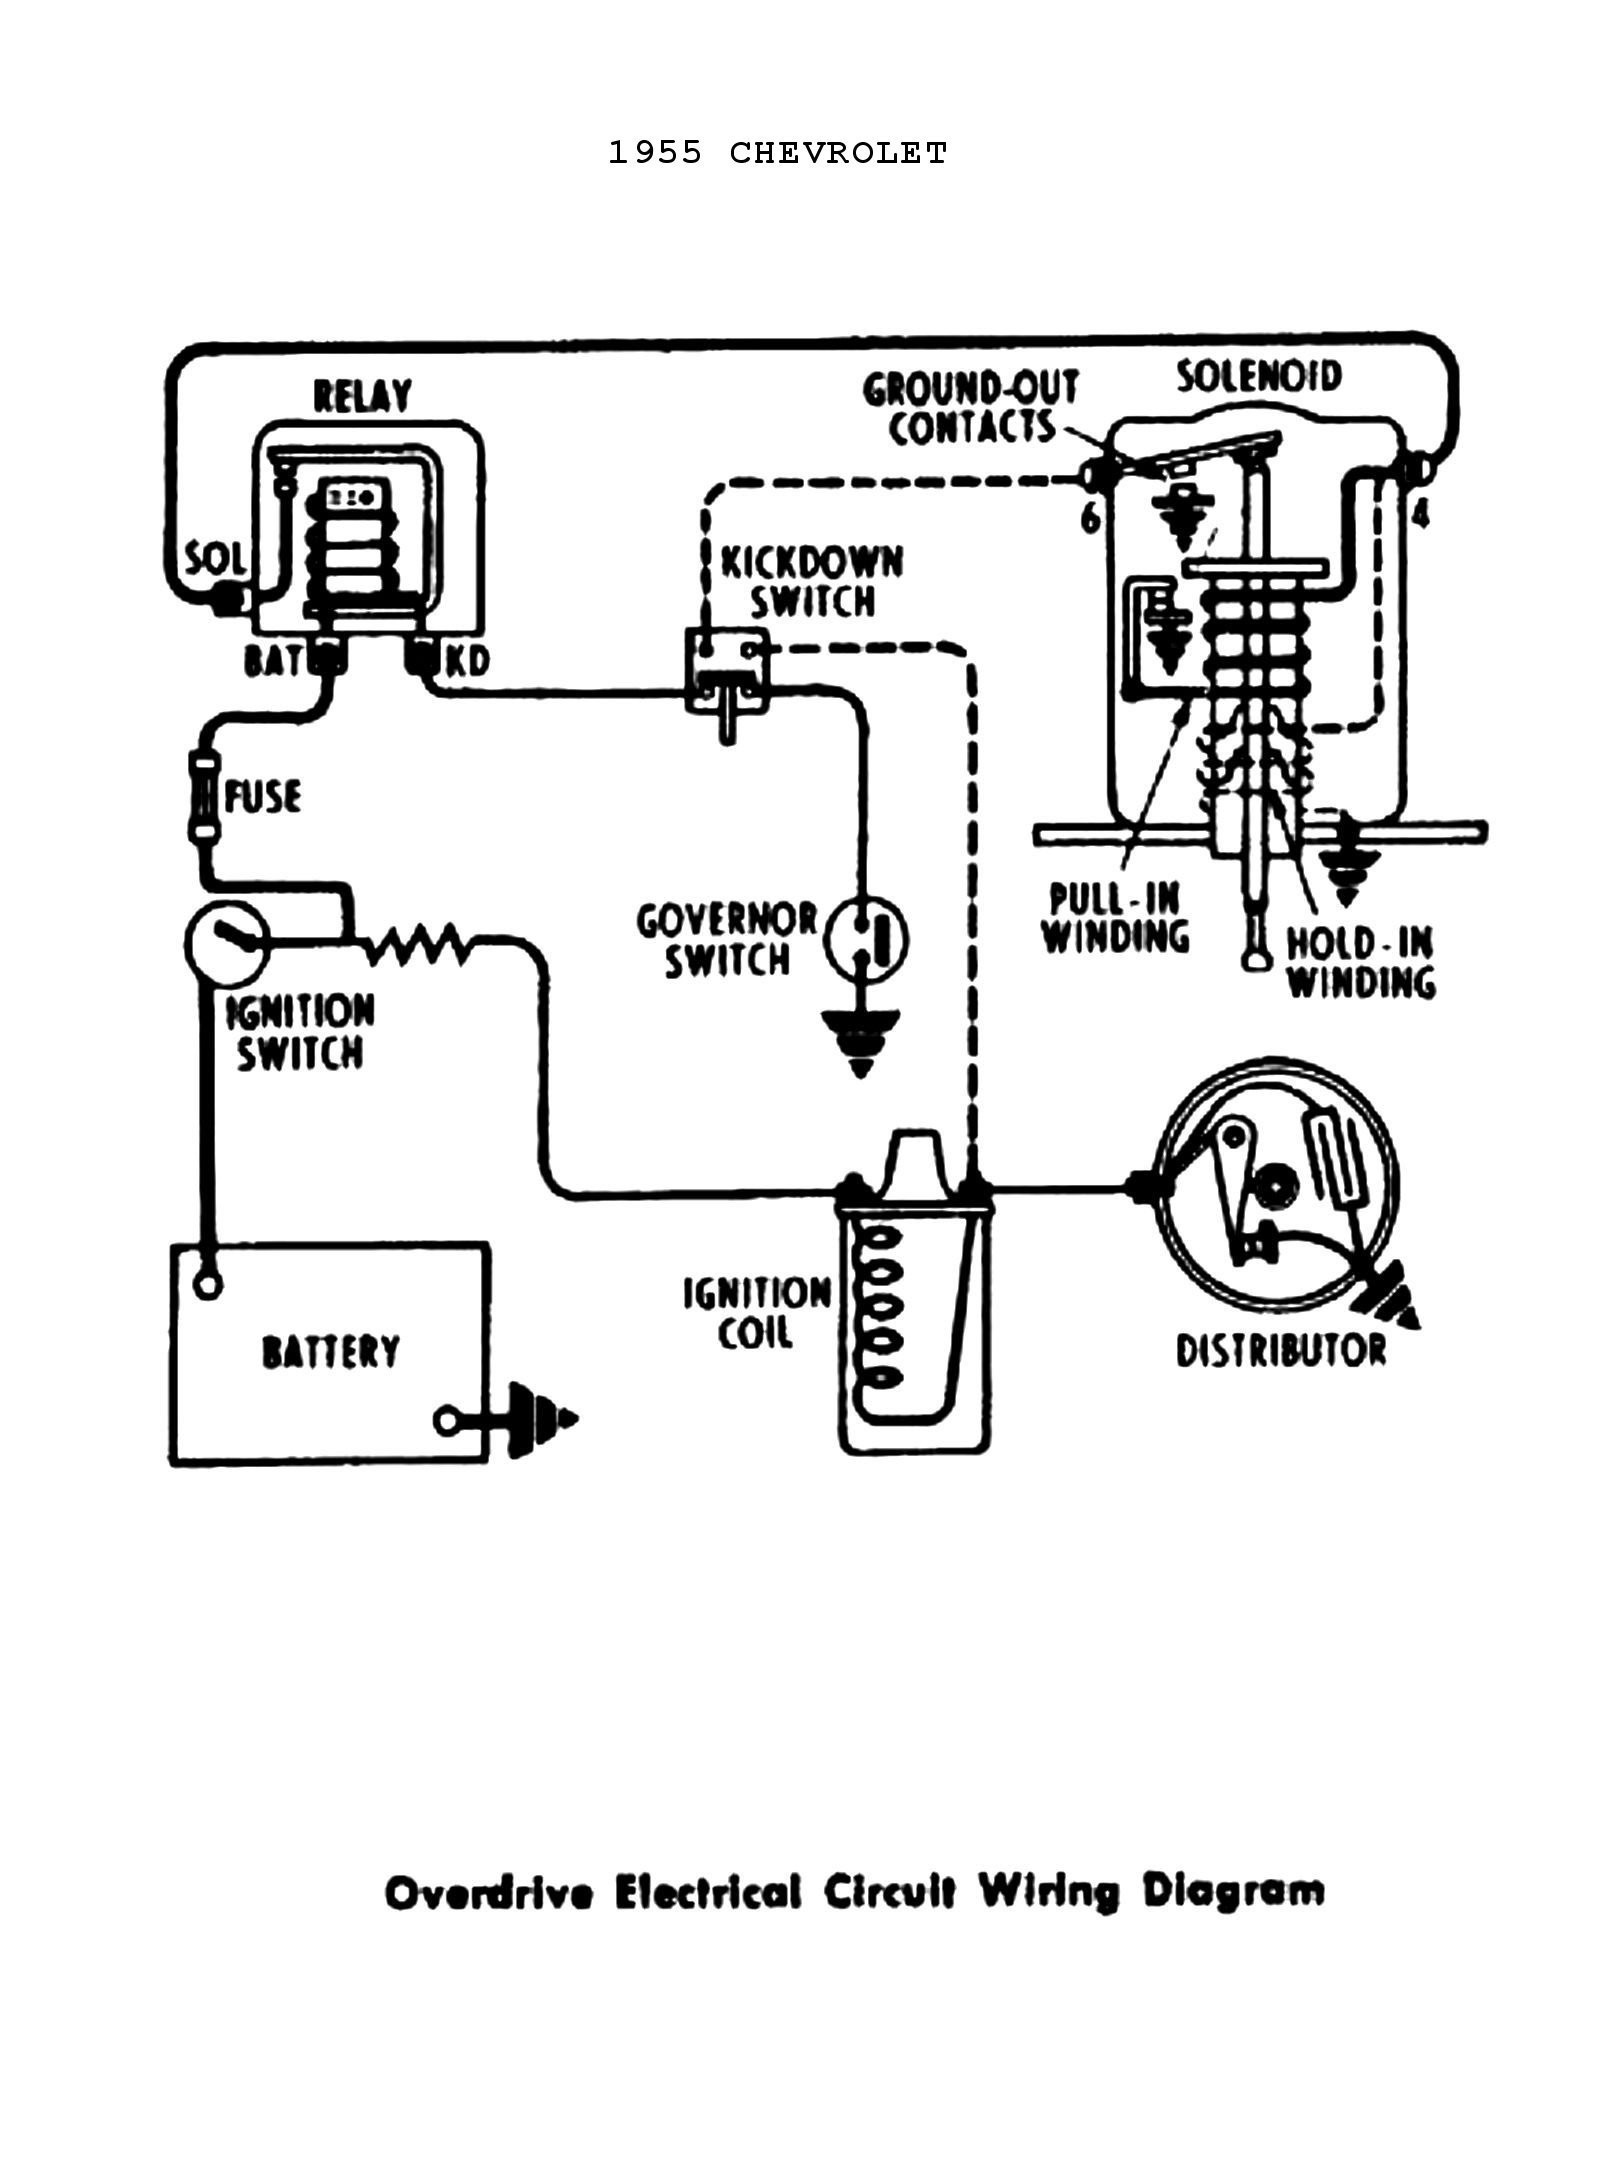 Coil Ignition System Diagram Wiring Diagram the Ignition System Valid Ignition Switch Wiring Of Coil Ignition System Diagram